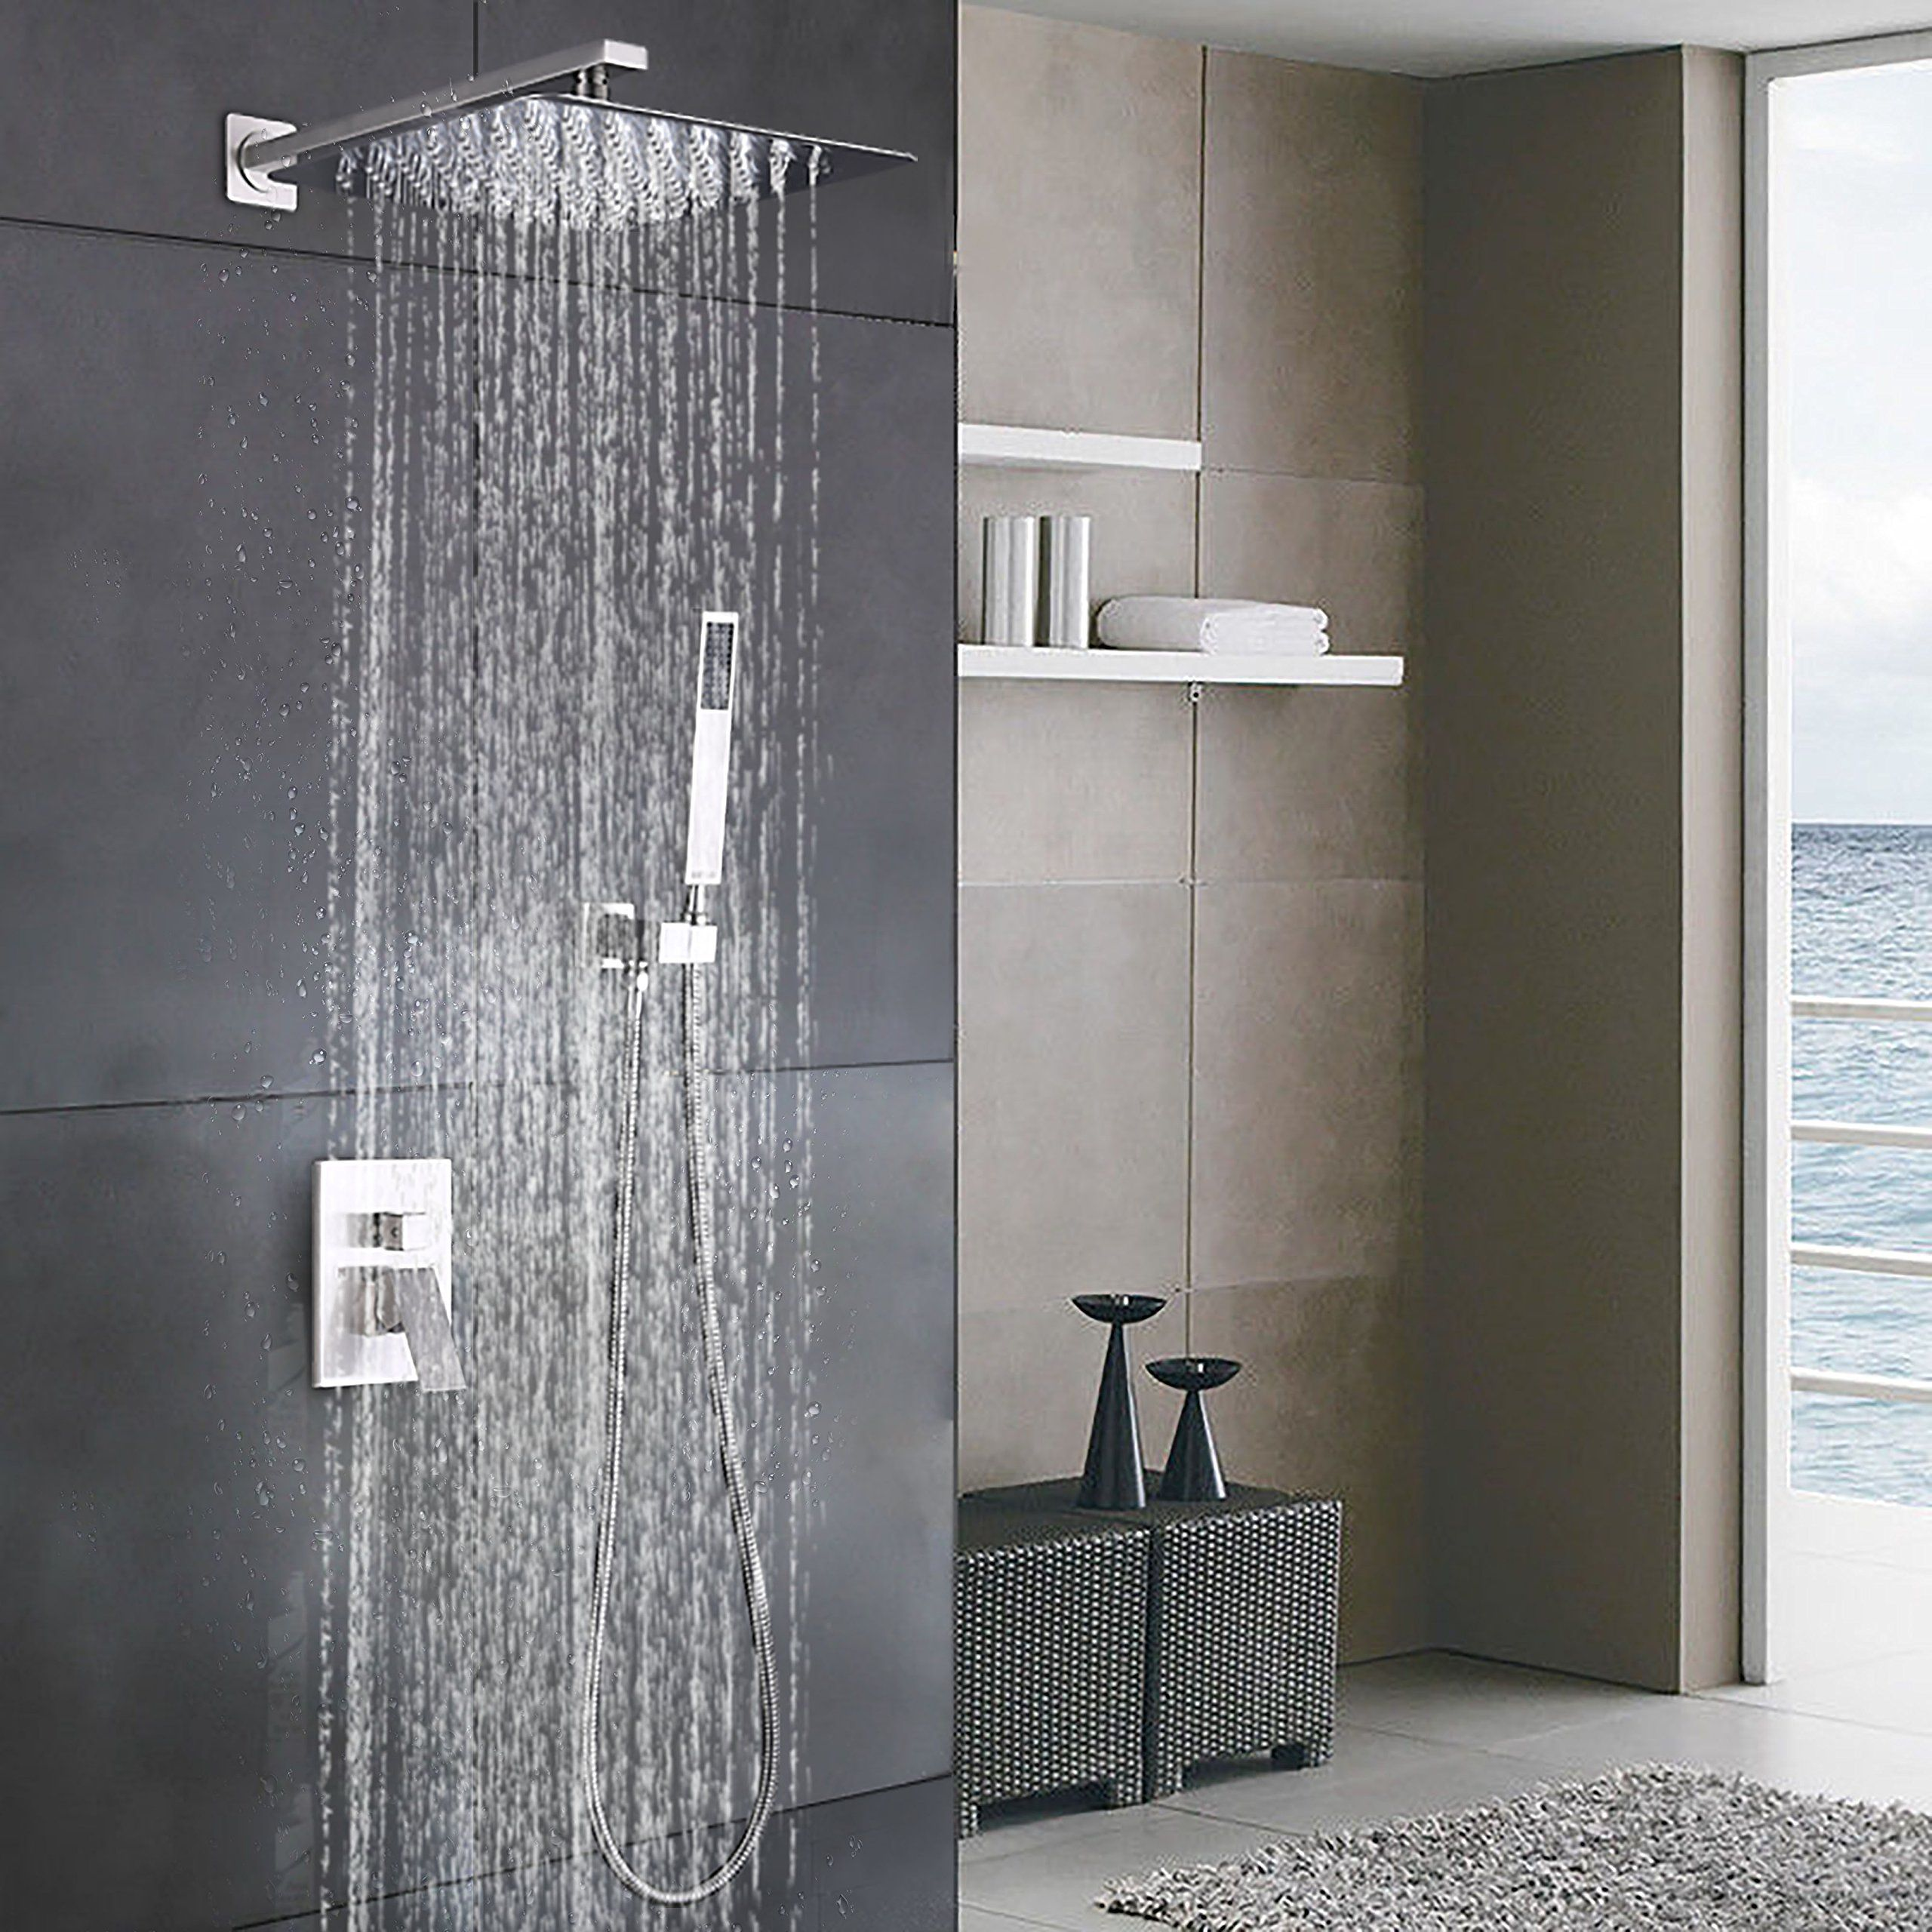 Esnbia Luxury Rain Shower Systems Wall Mounted Shower Combo Set With High  Pressure 12 Inch Square Rain Shower Head And Handheld Shower Faucet Set  Brushed ...